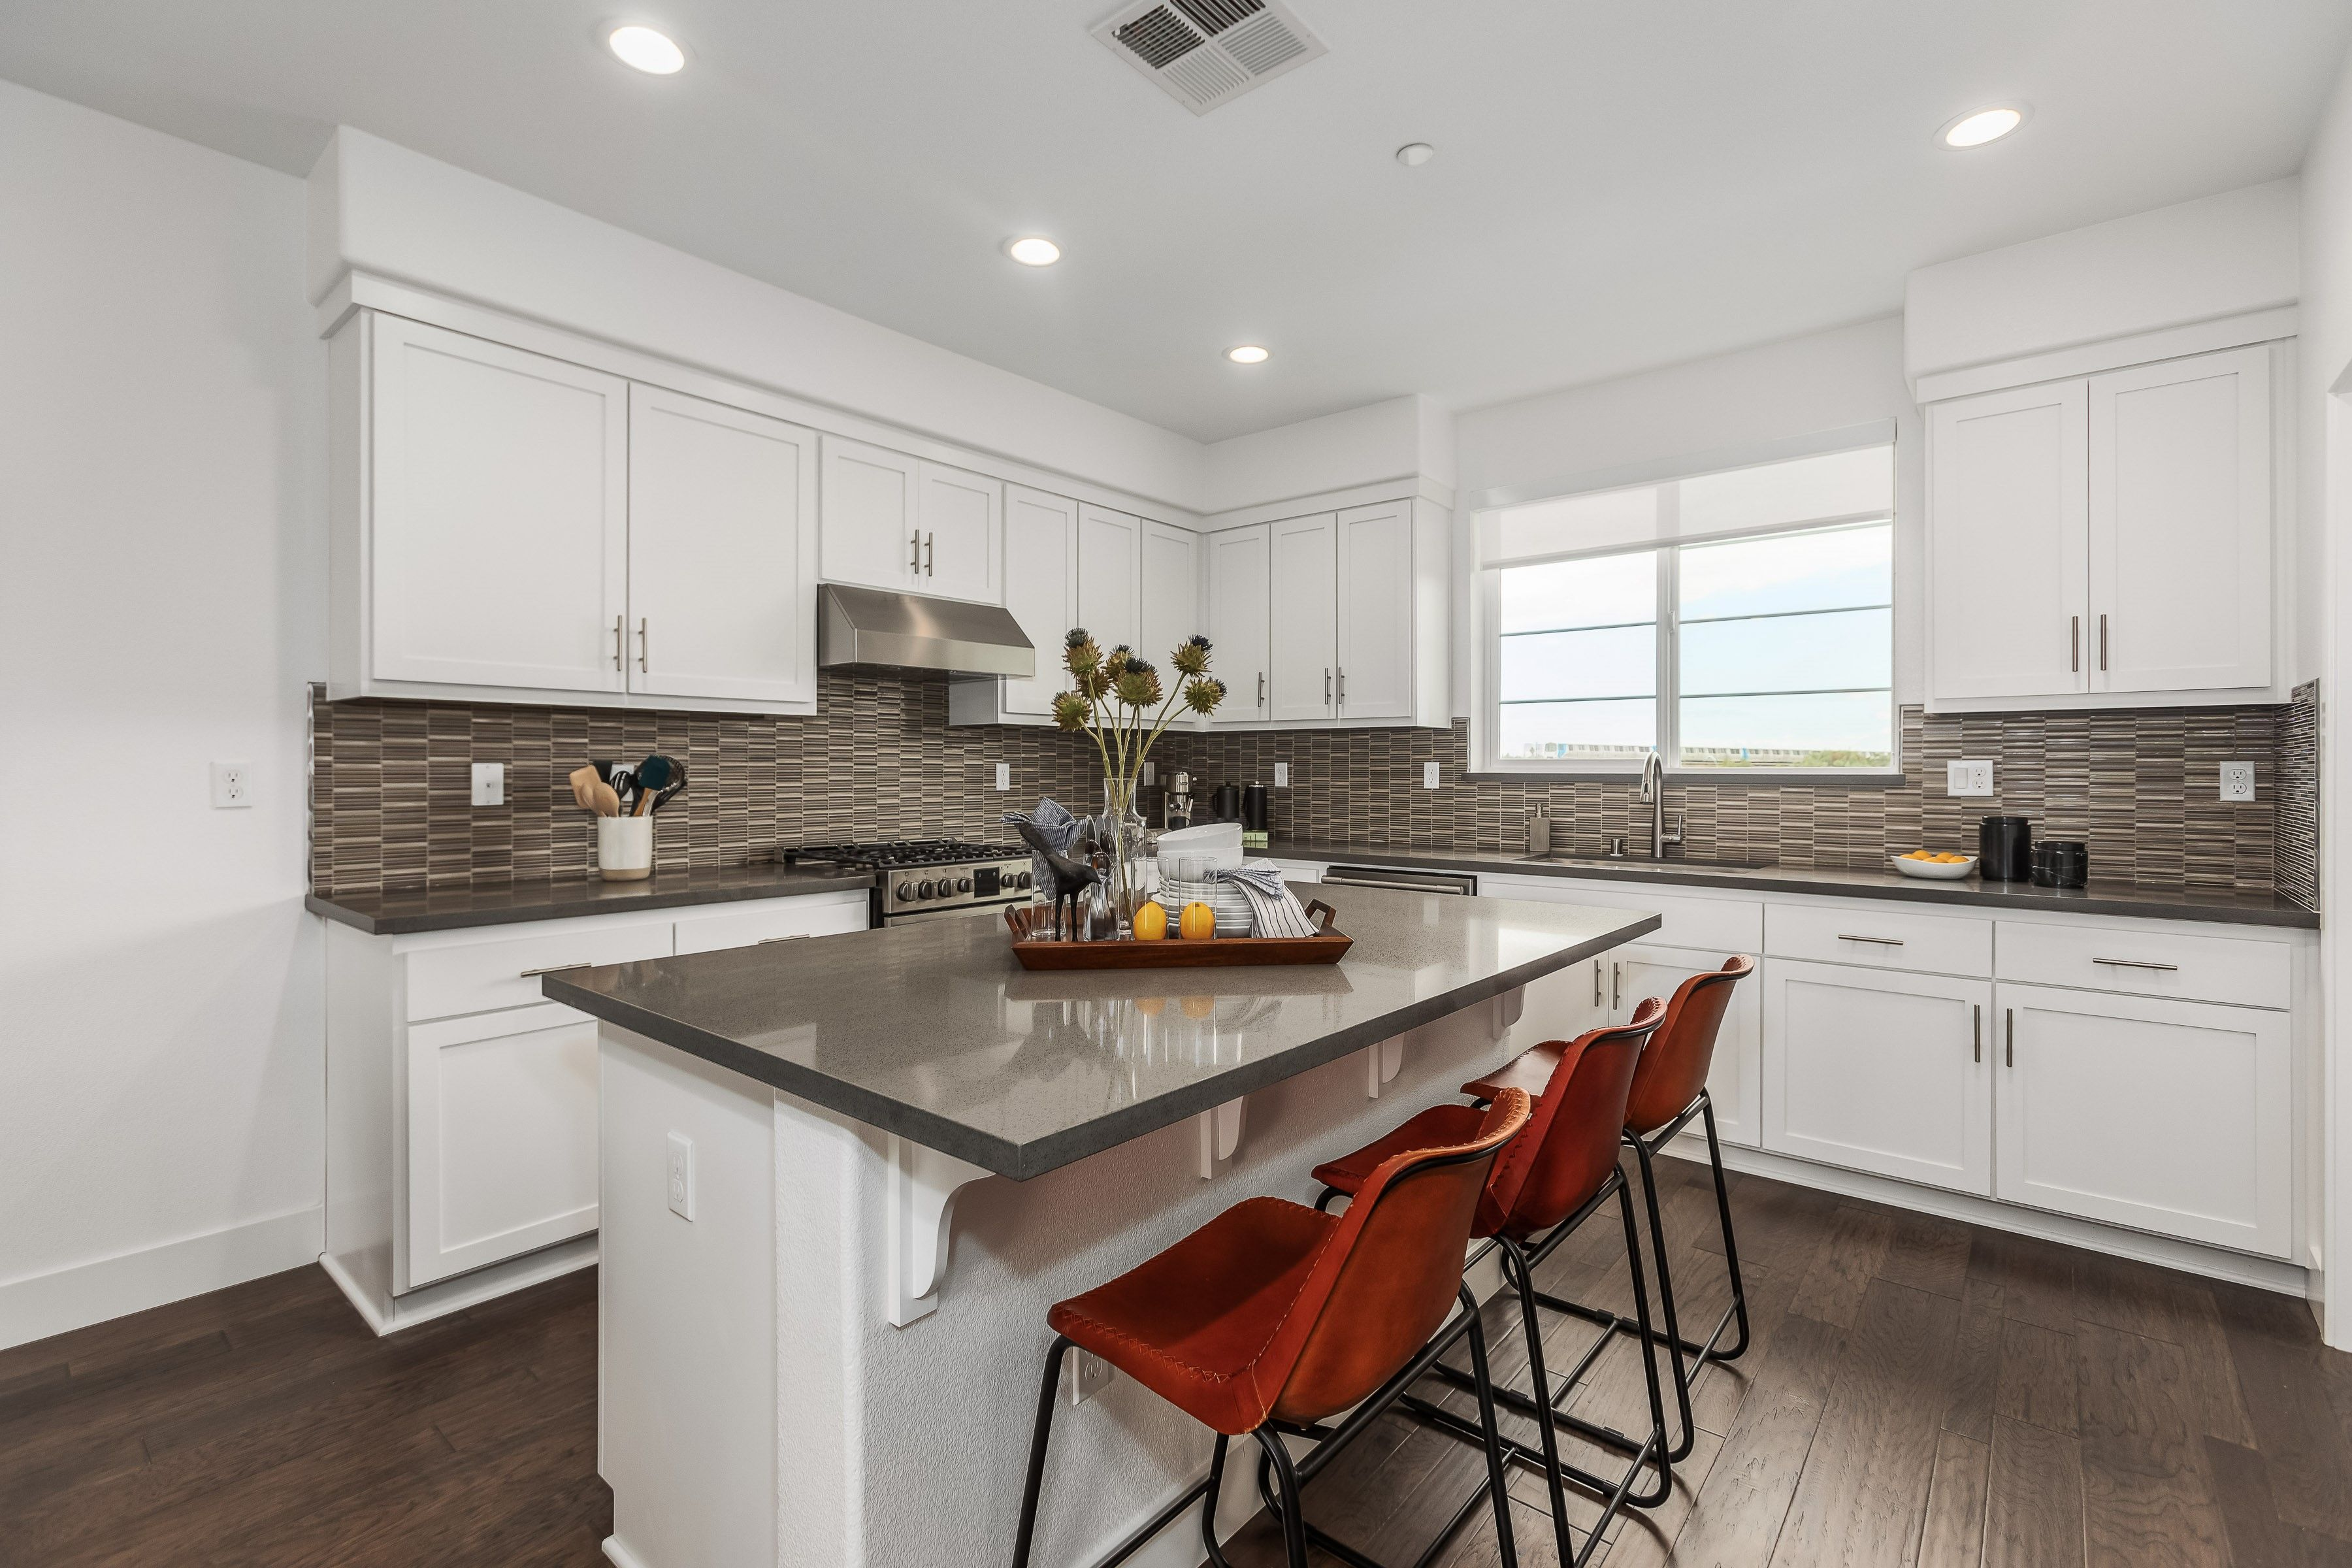 Kitchen featured in the Plan 2 WLH By Taylor Morrison in Oakland-Alameda, CA